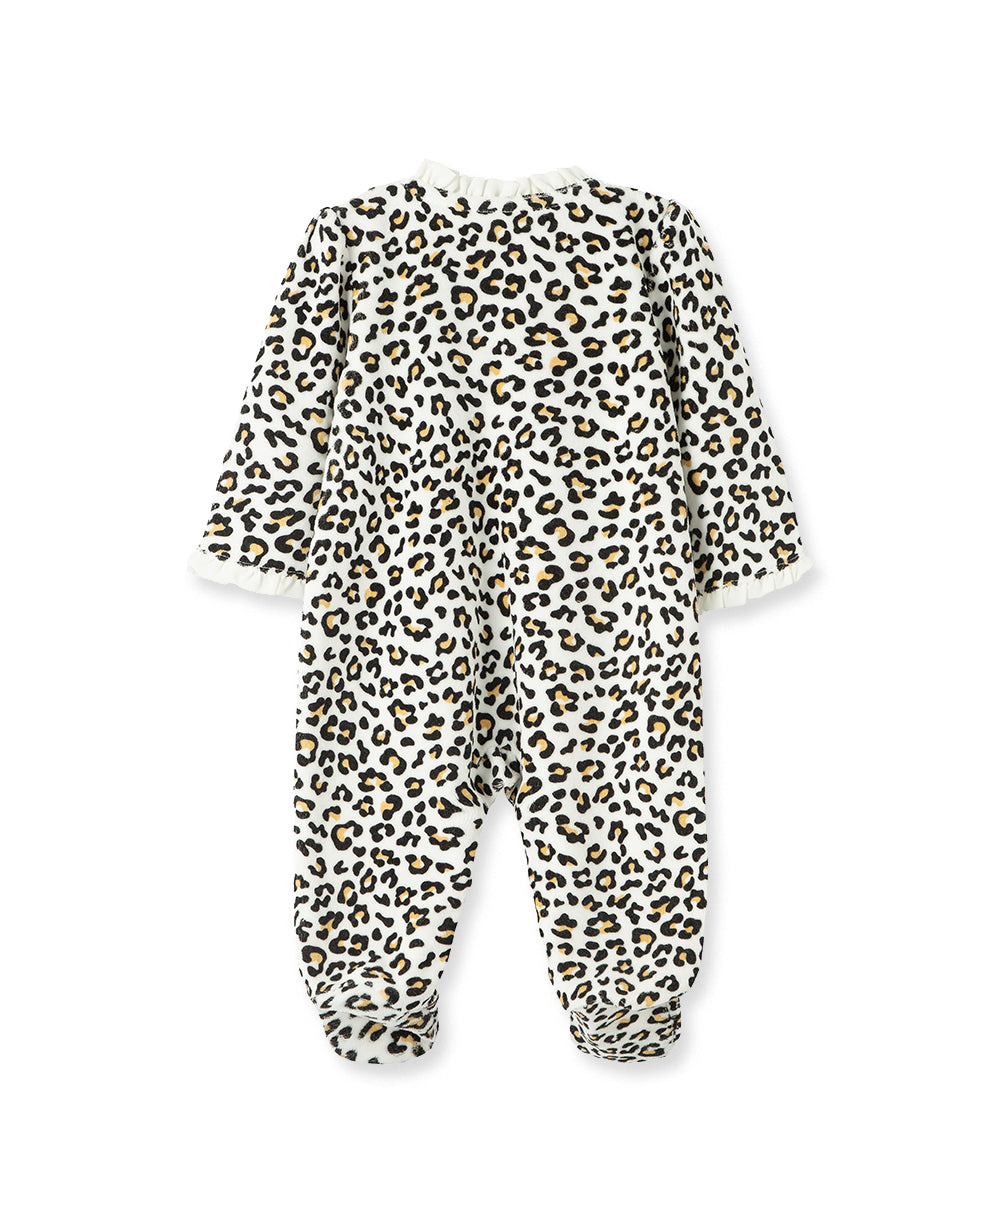 Leopard Velour Footed One-Piece